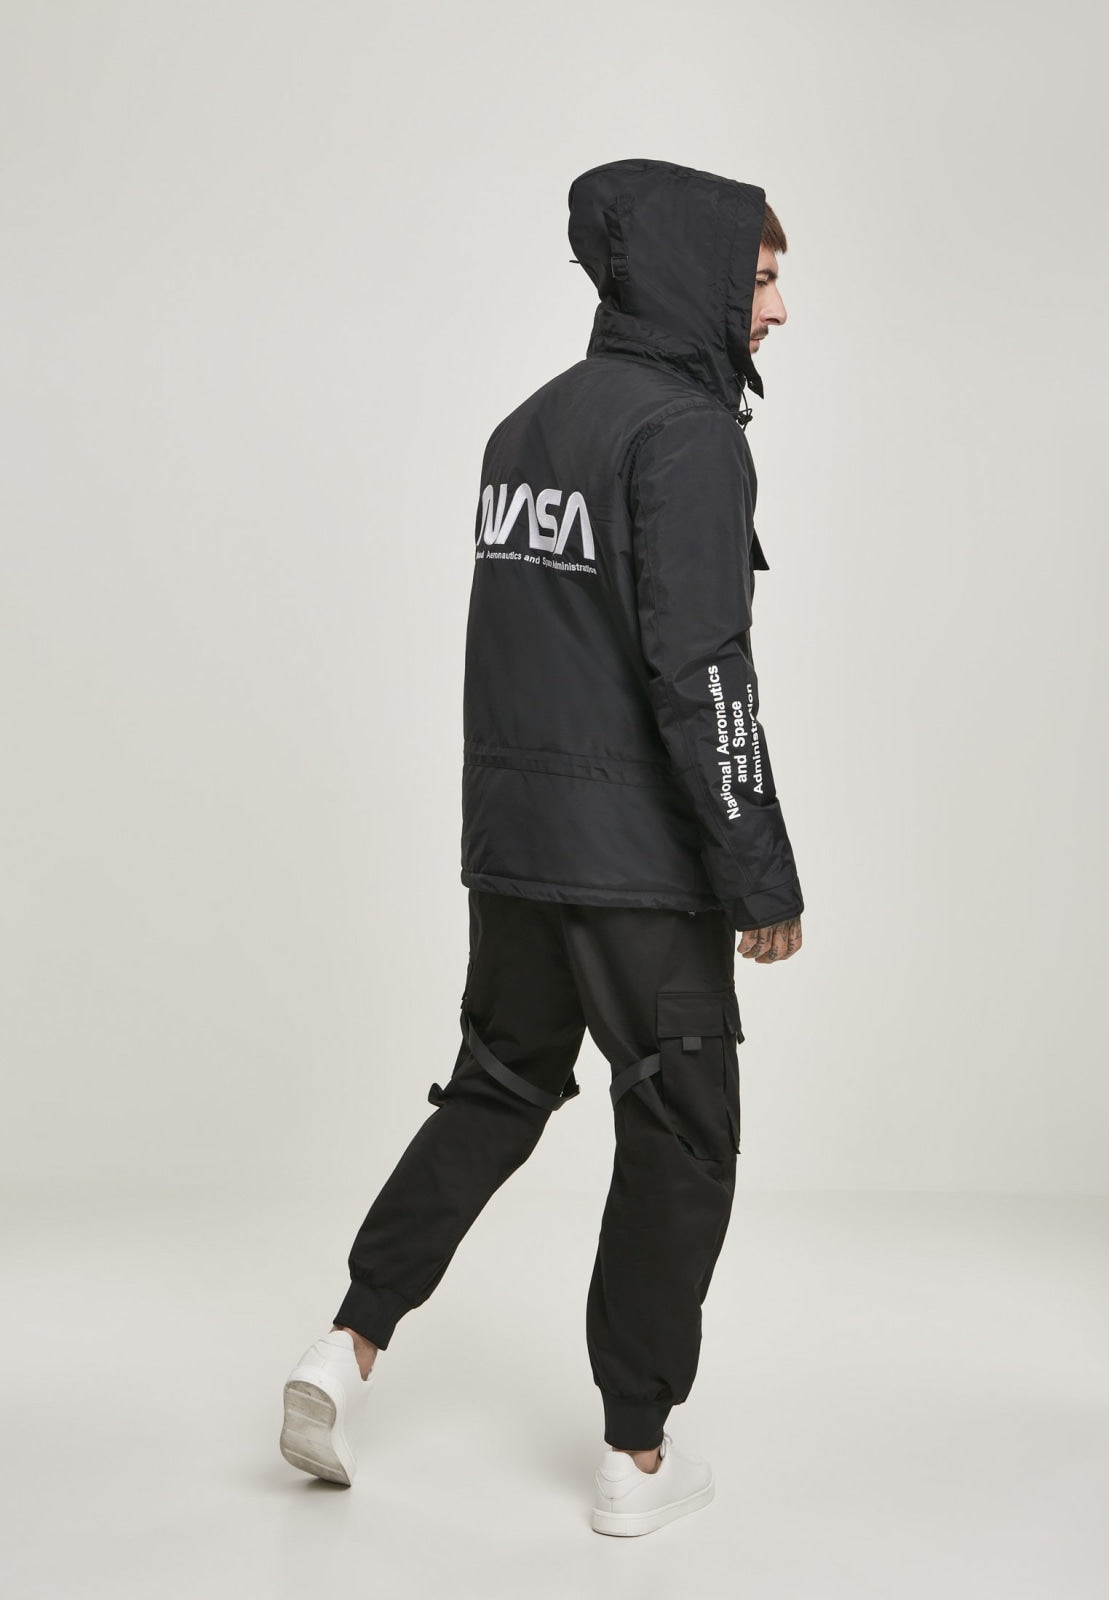 Nasa Black Windbreaker Nasa Mister Tee